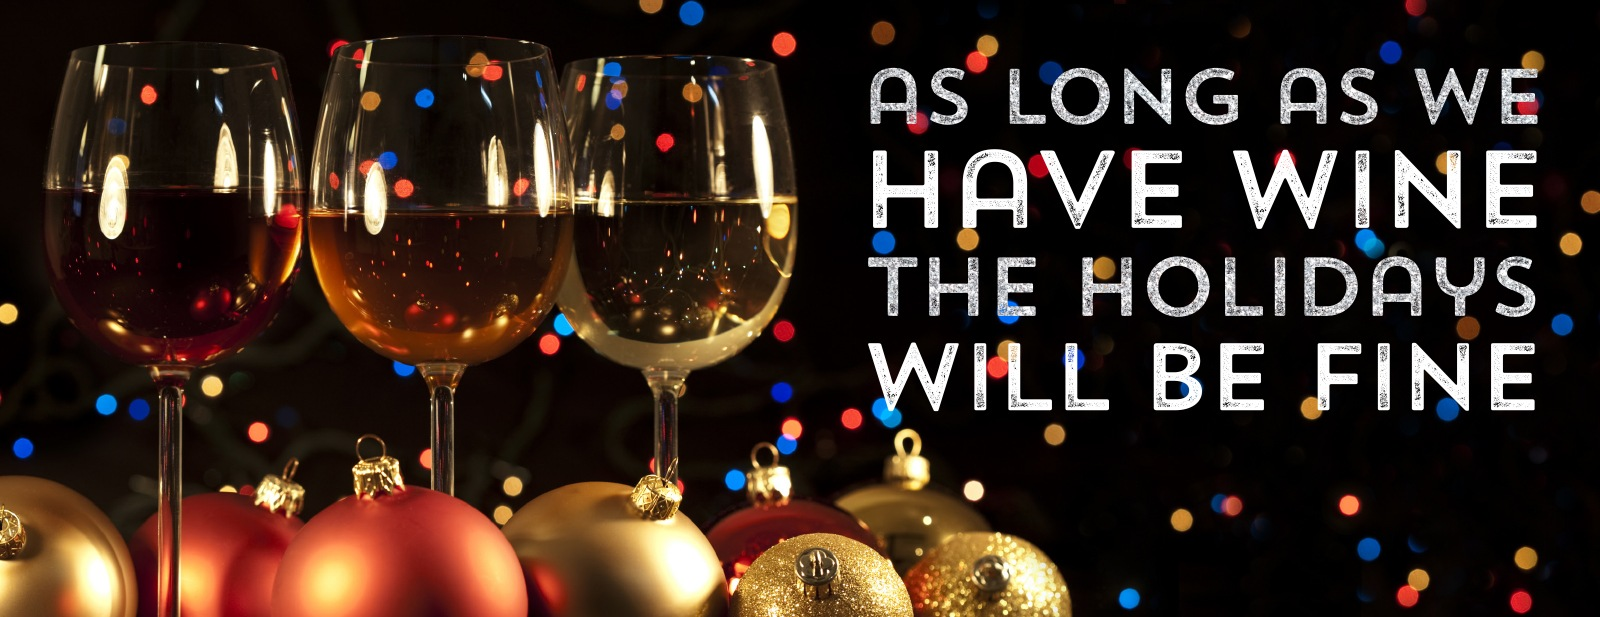 As long as we have wine, we'll be fine!